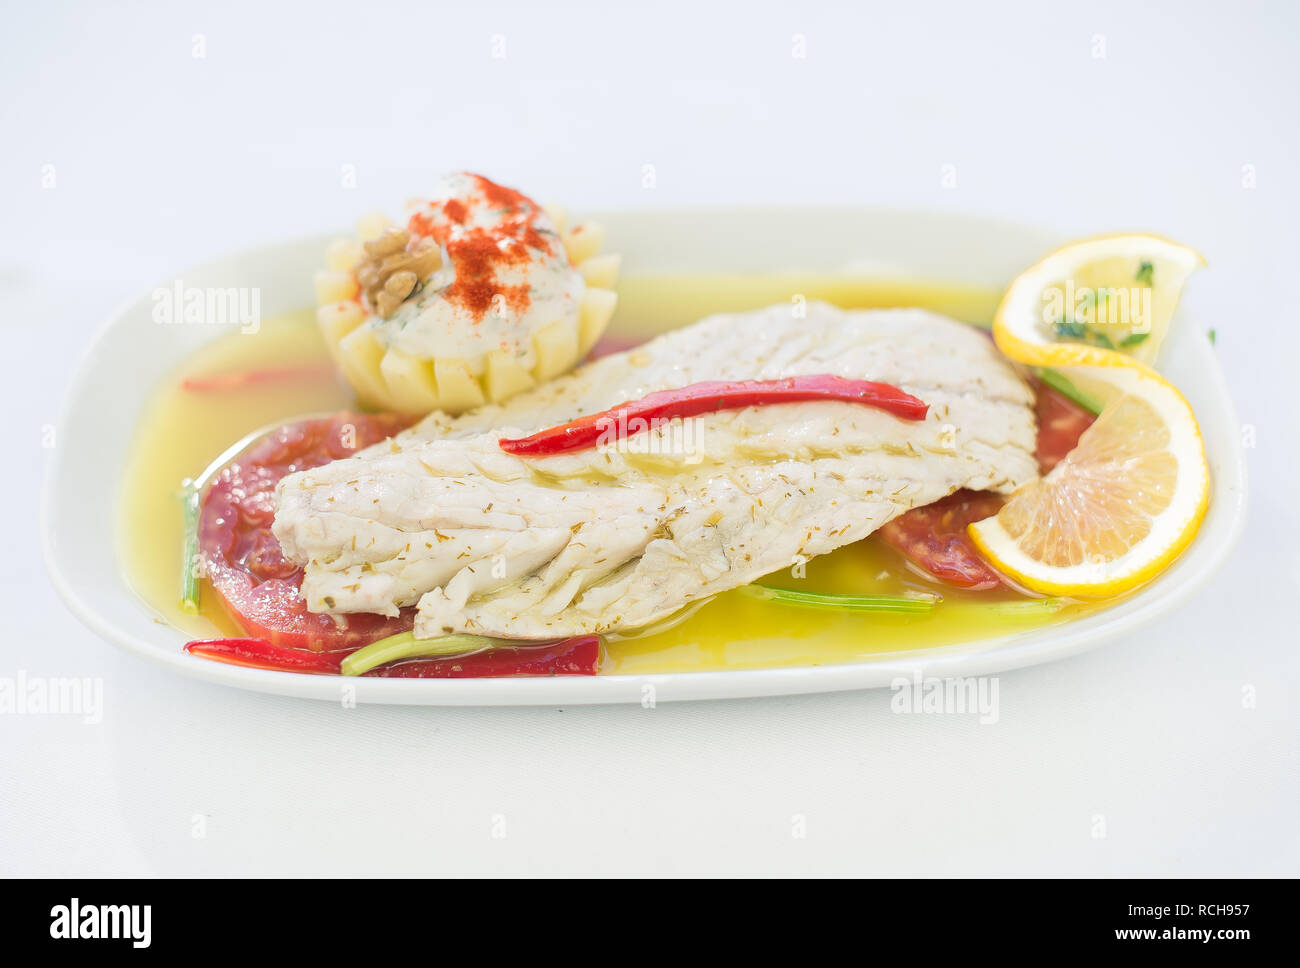 Grilled fish food. This grilled seafood fish dish on isolated white background.  Delicious healthy yummy tasty grilled seafood fish dish - Stock Image